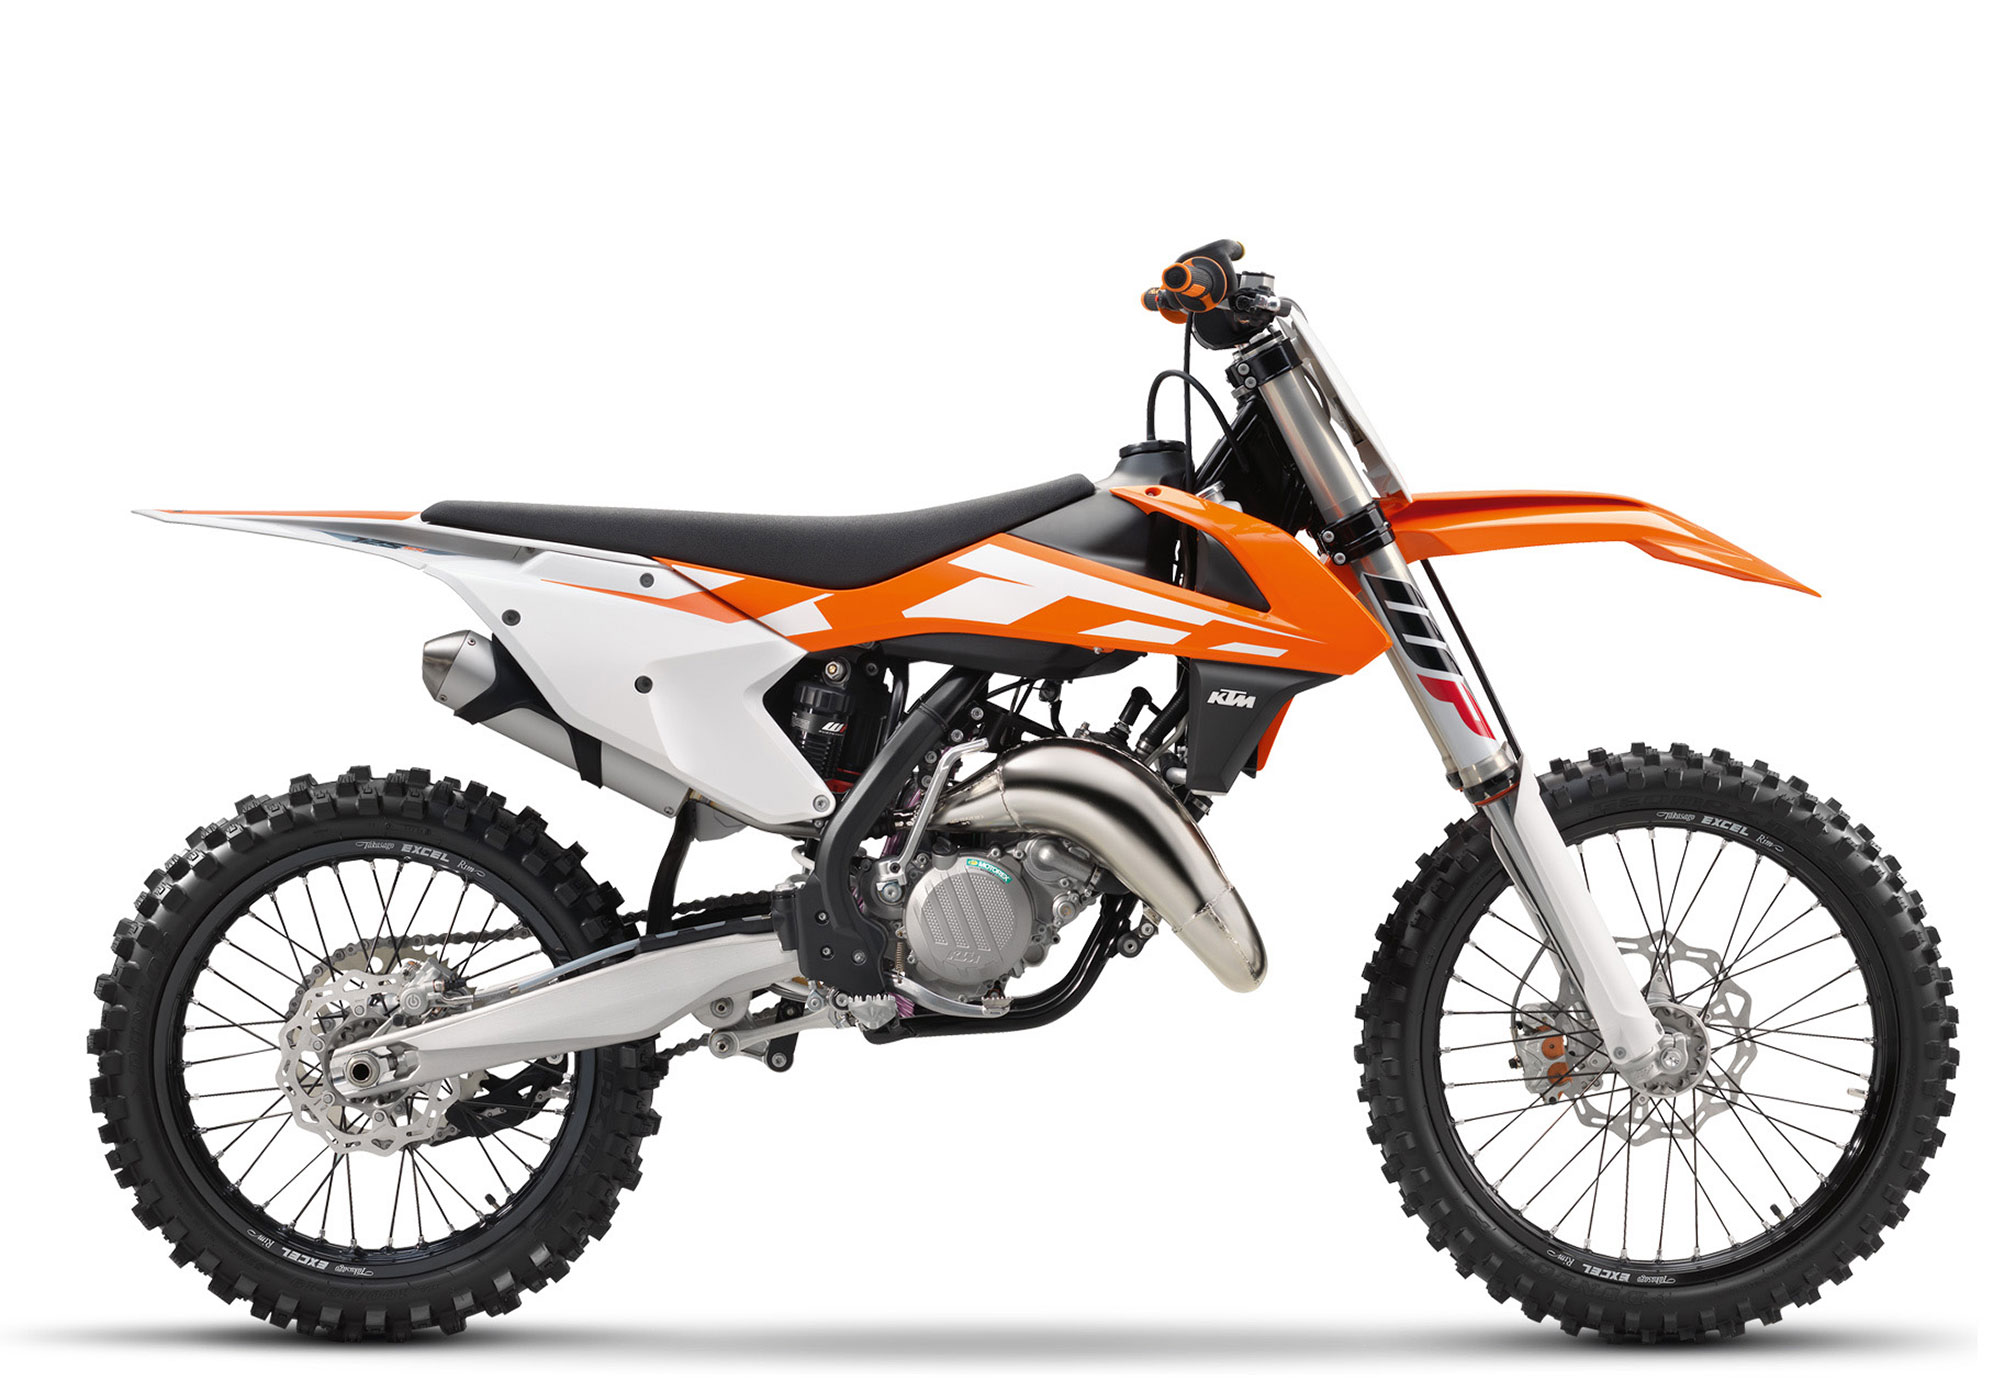 My Ktm Is To High In Nthe Back